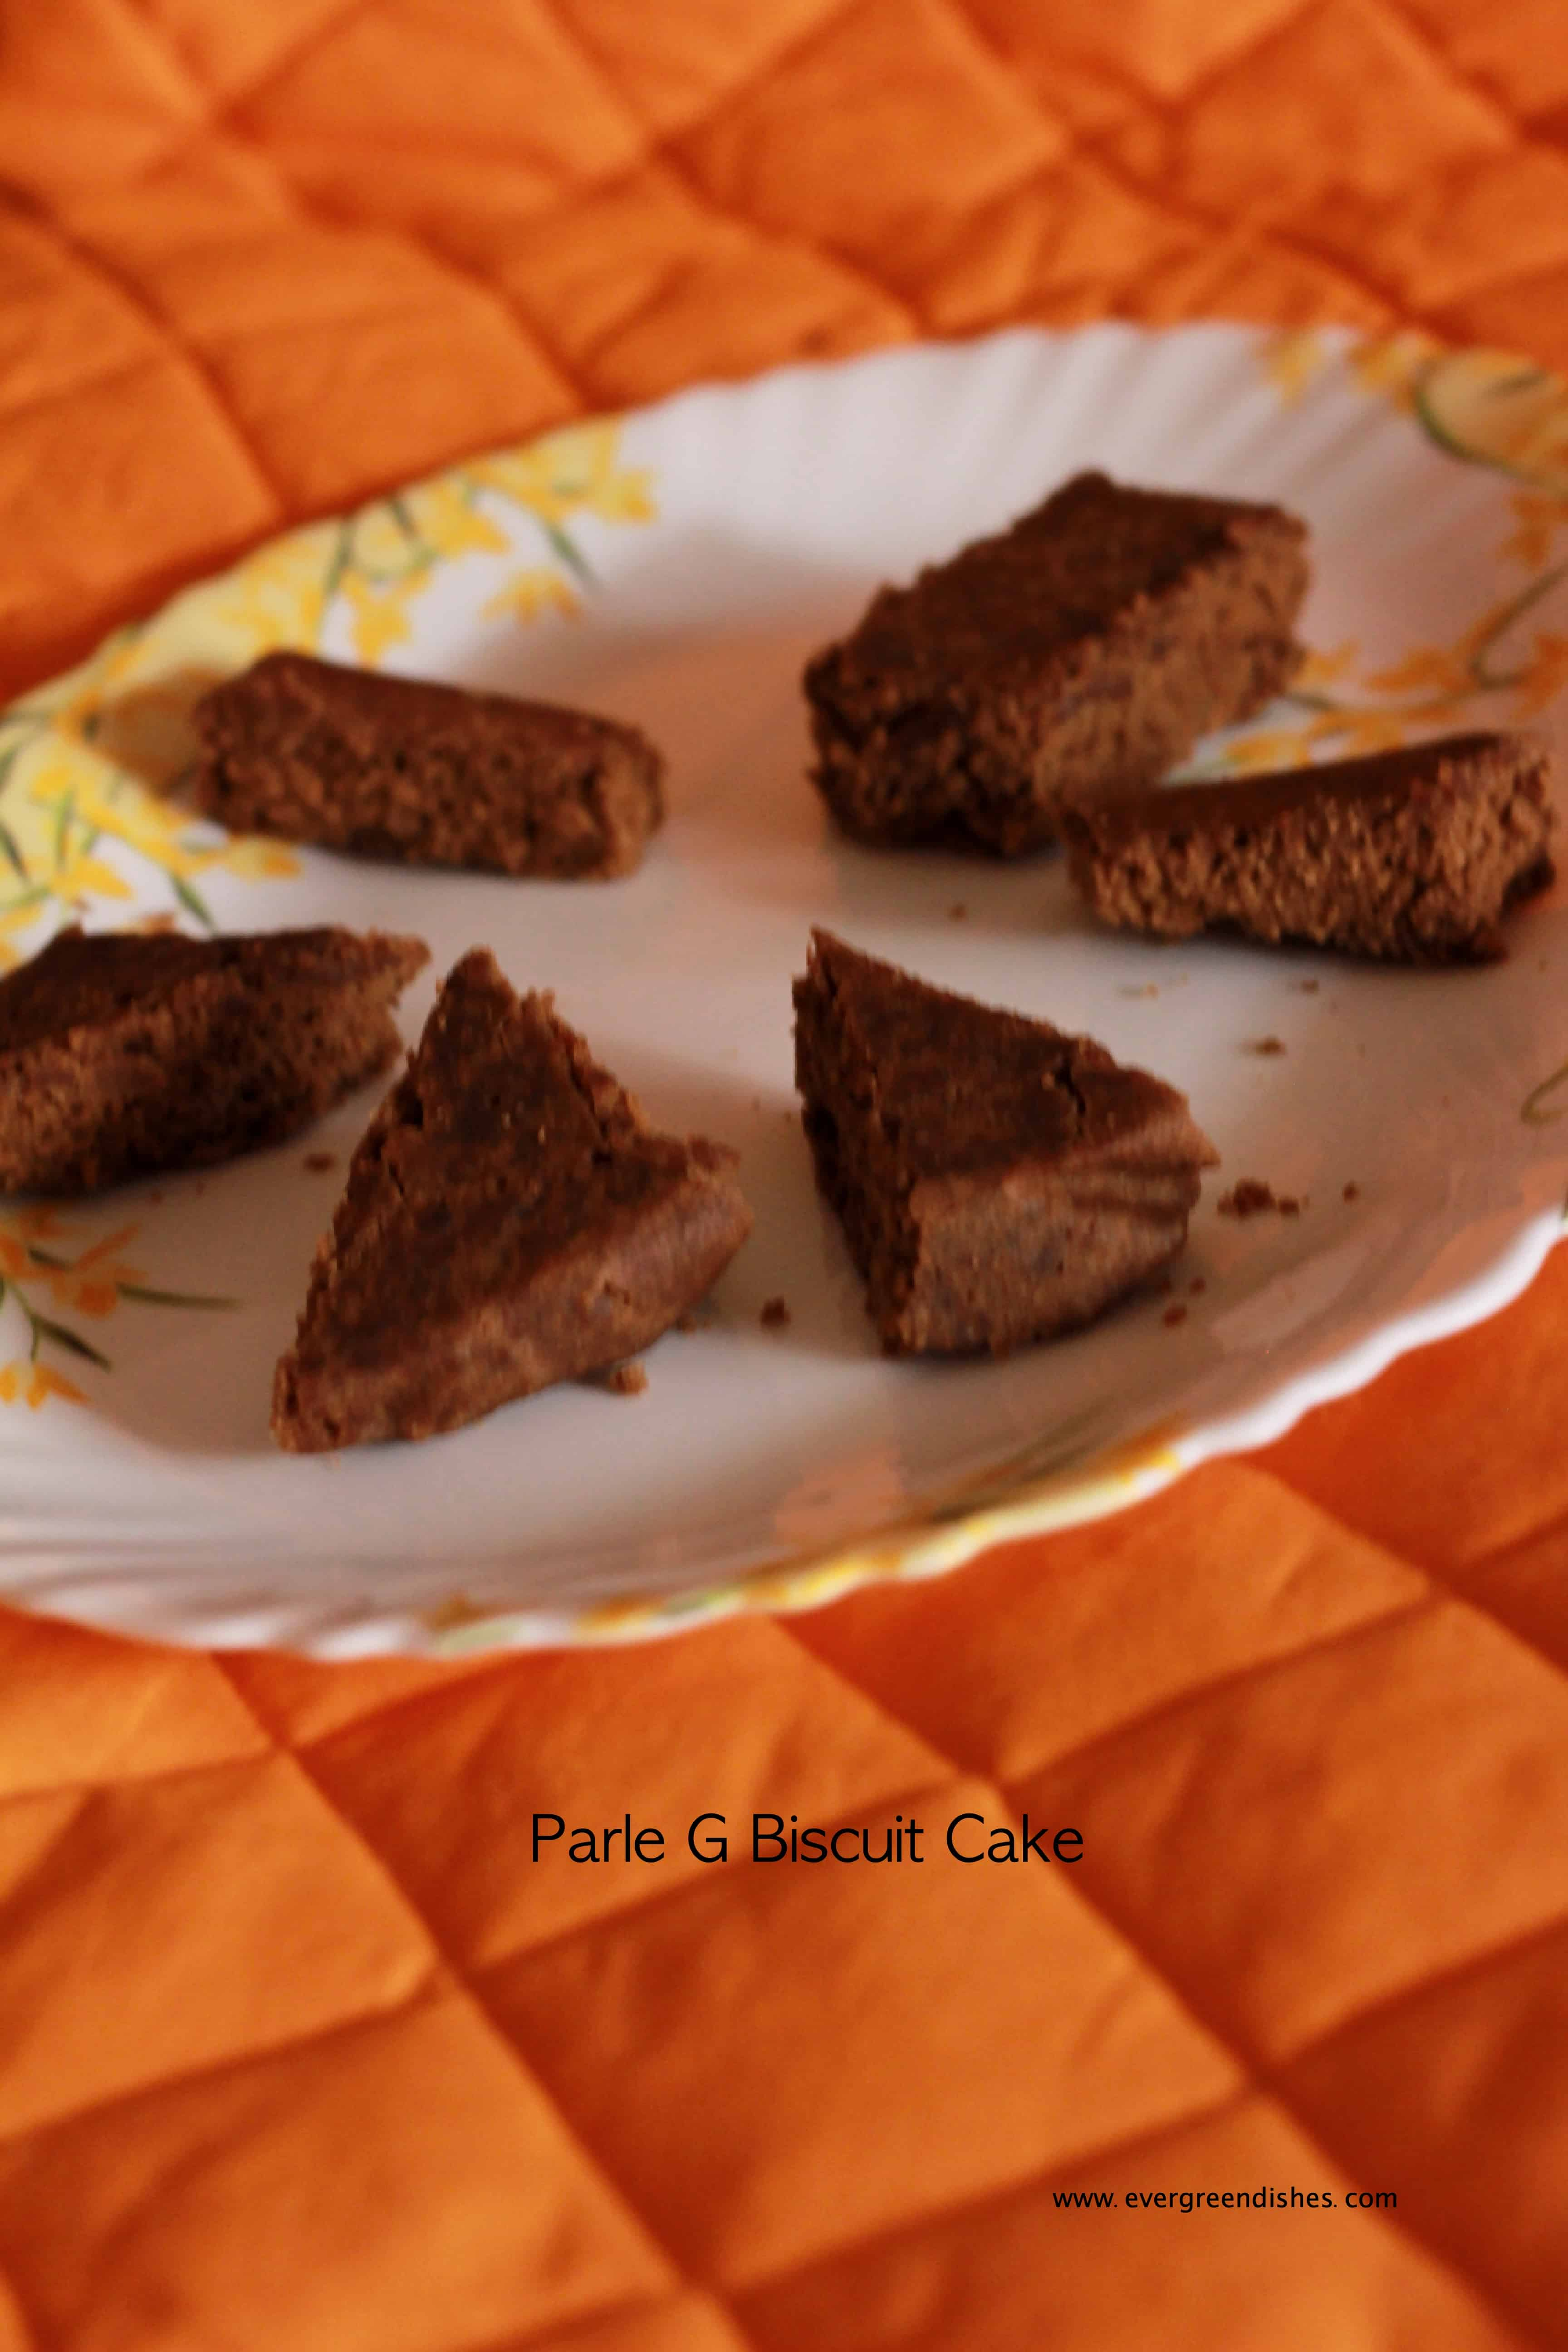 Parle G biscuit cake